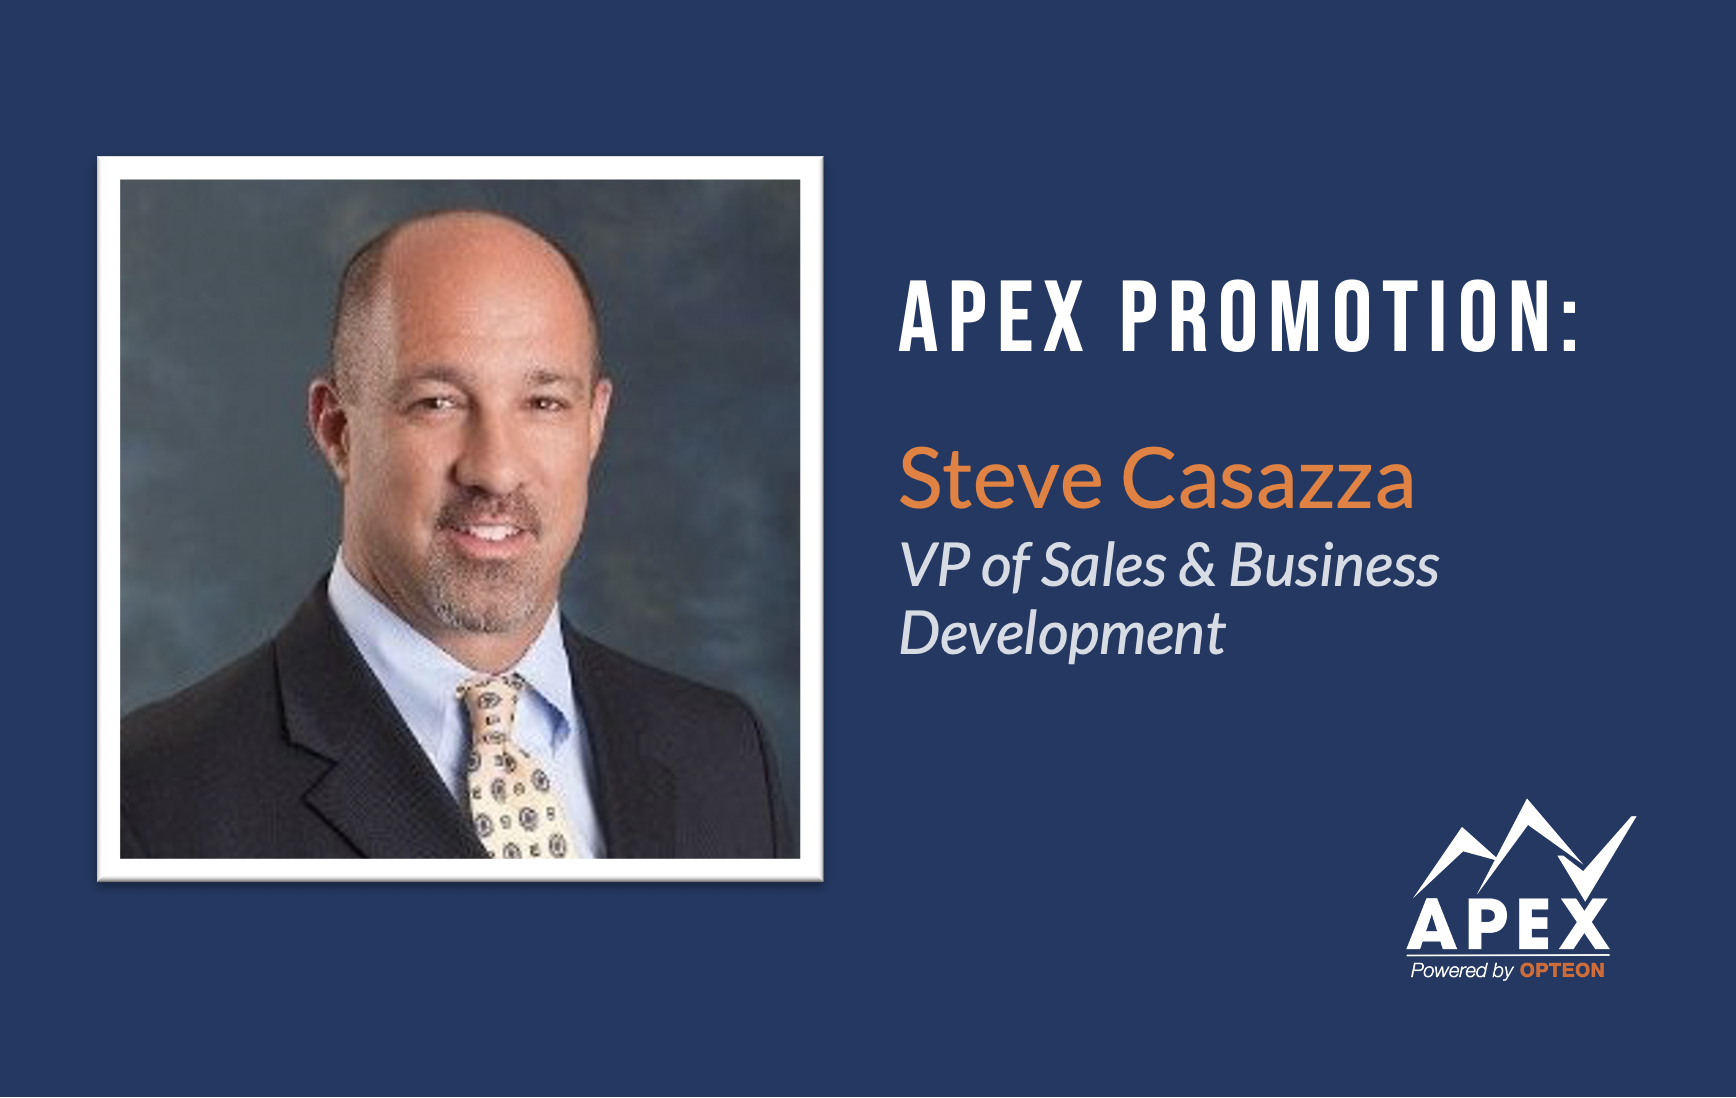 Apex Promotes New VP of Sales & Business Development